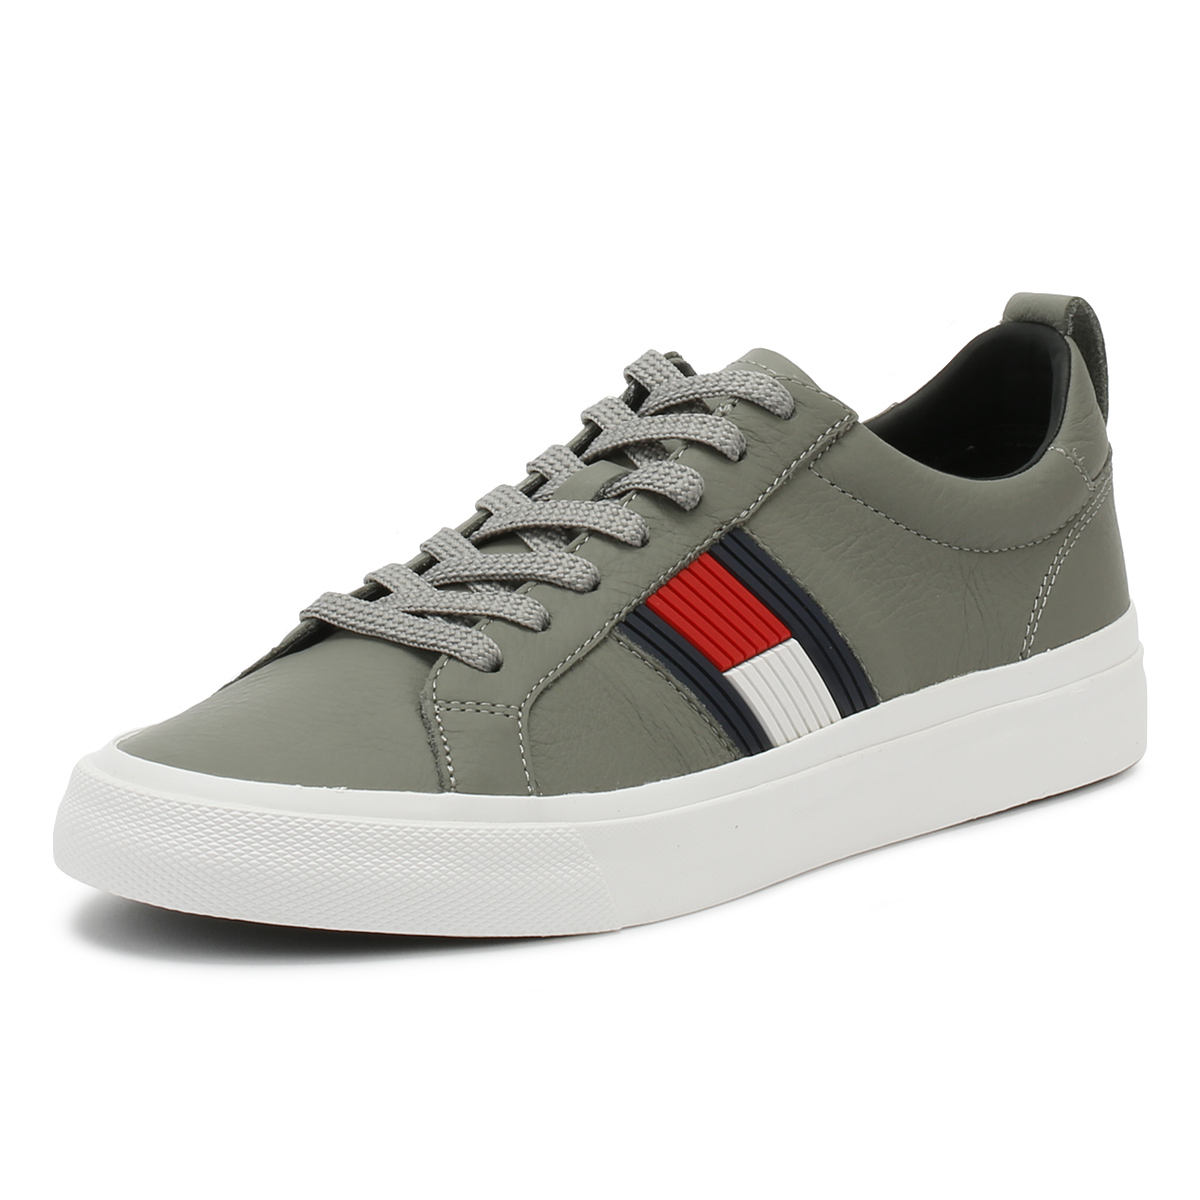 Tommy Hilfiger Mens Trainers Light Grey Flag Detail Sport Casual Shoes 7575e69bc18